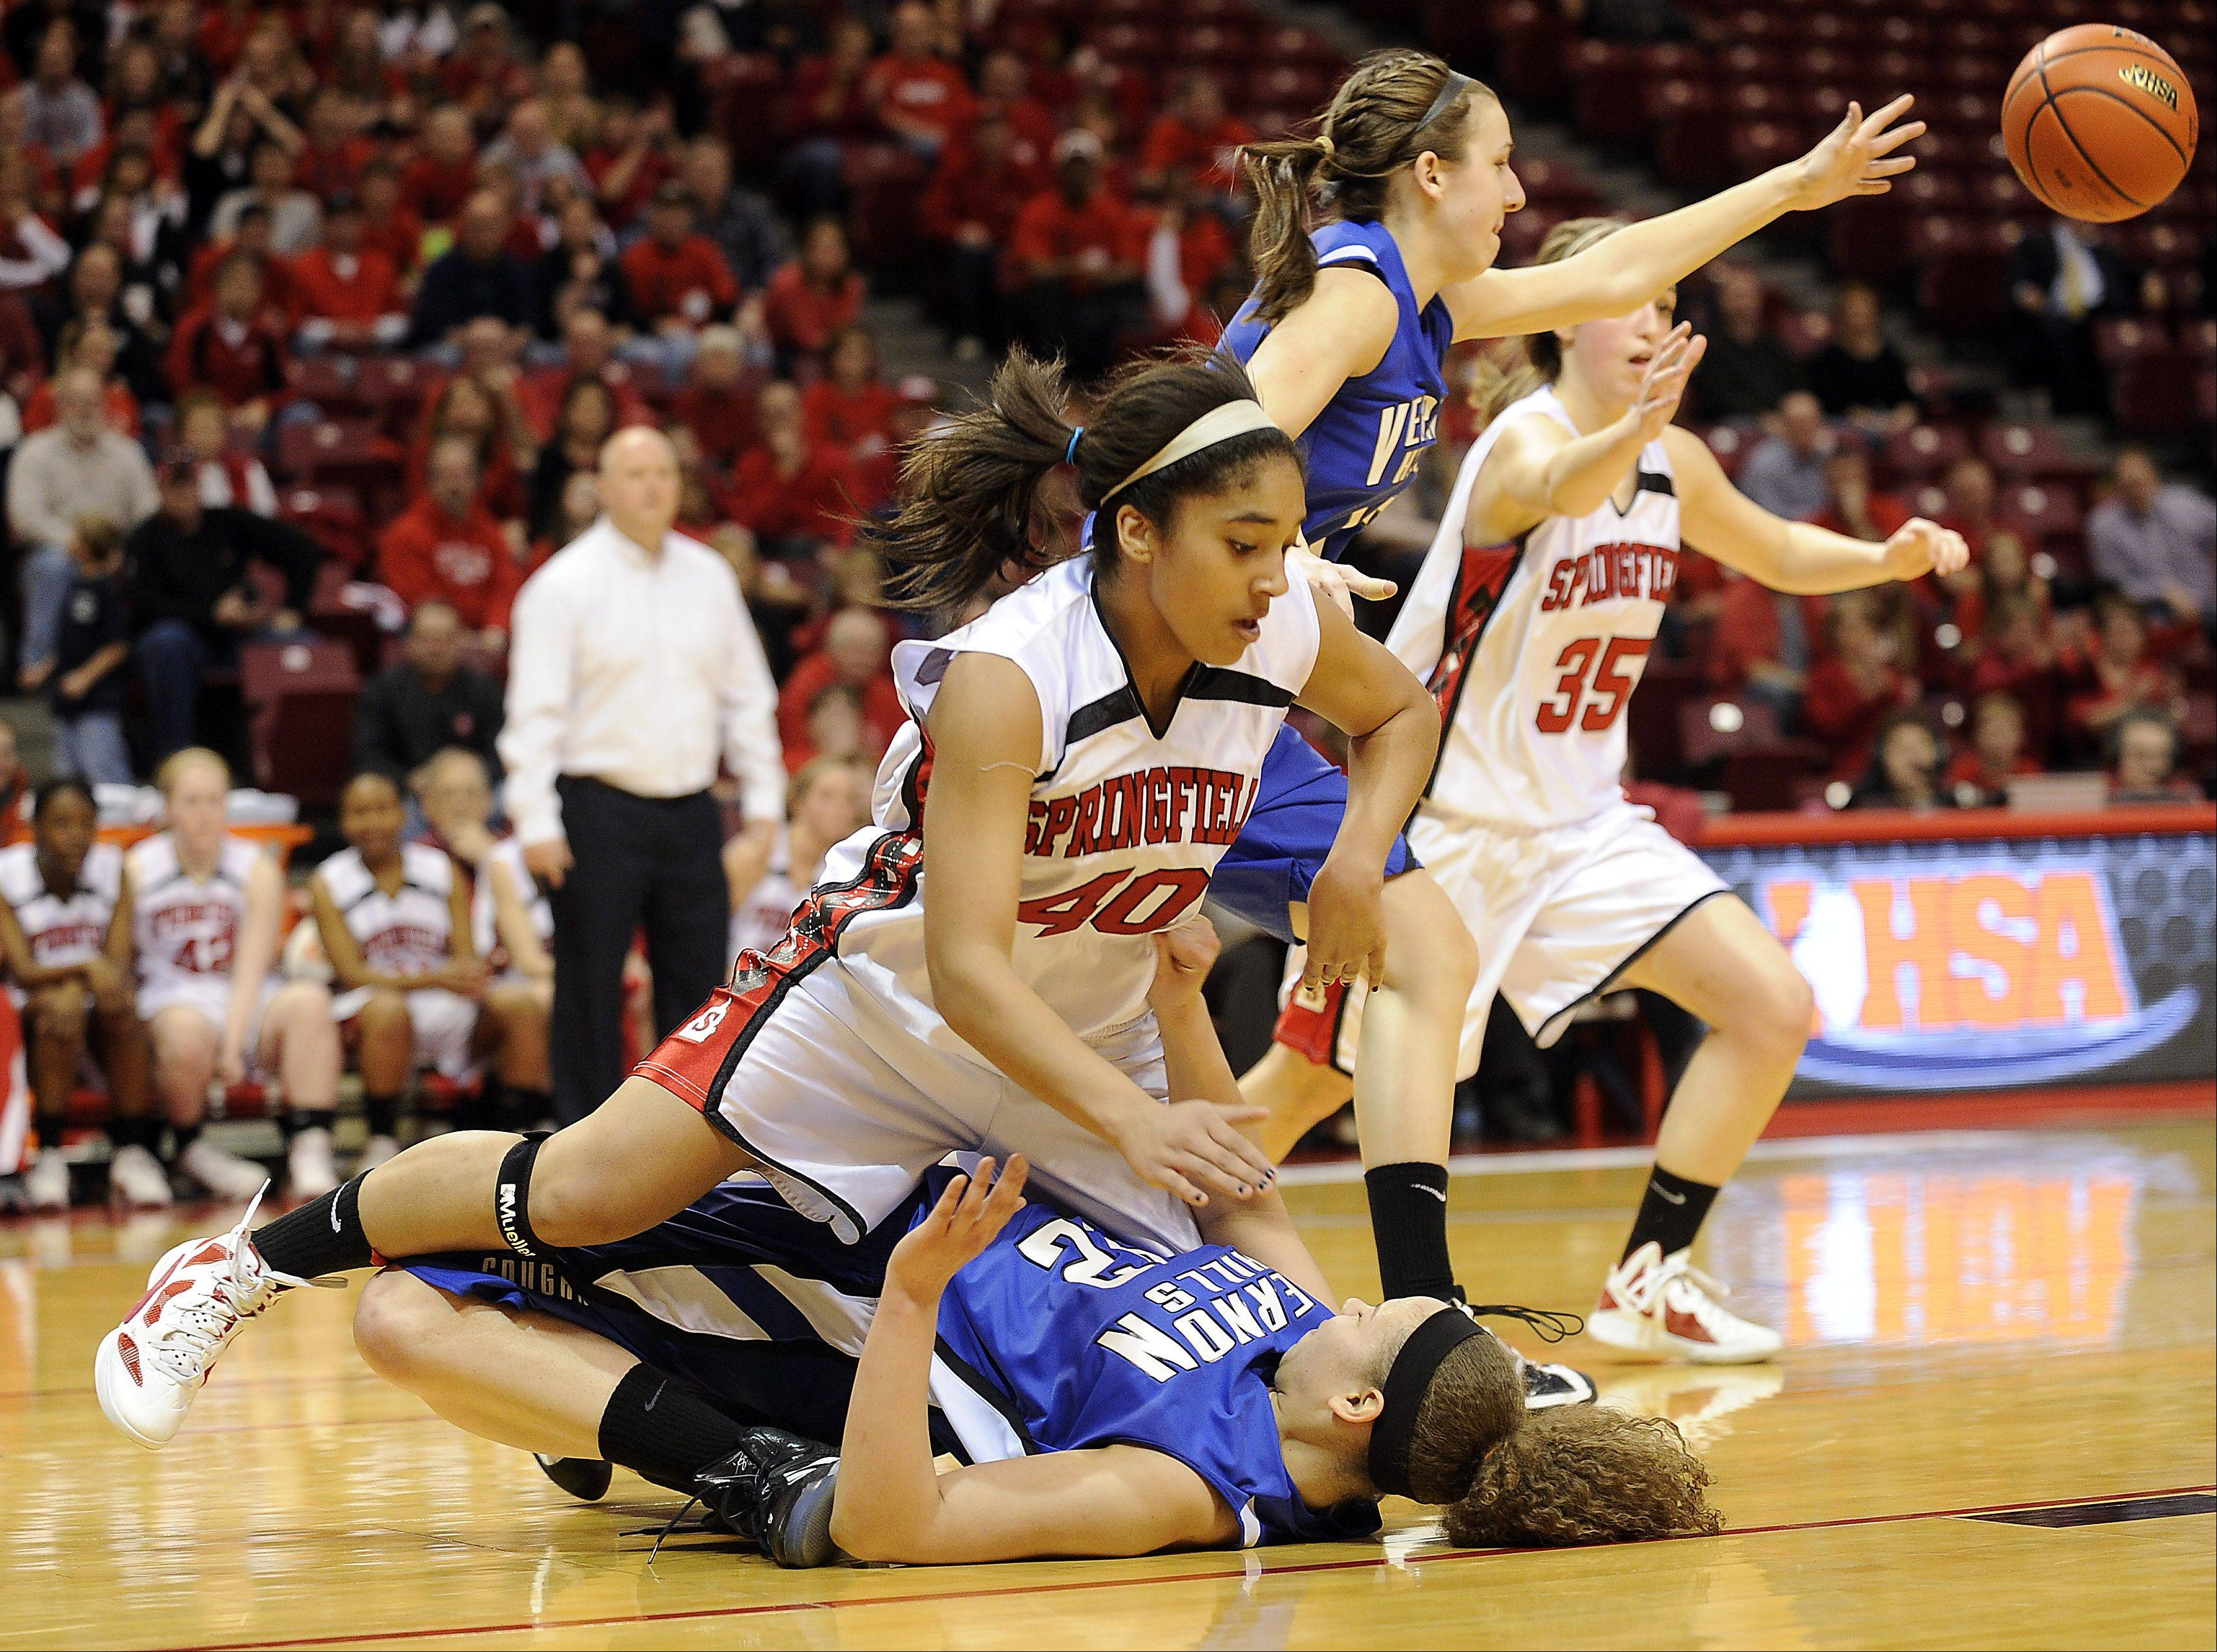 Vernon Hills' Lauren Webb hits the floor hard with the help of Springfield's Anika Webster in the second quarter of play in the 2012 IHSA Class 3A girls basketball tournament in Normal, Illinois on Friday.